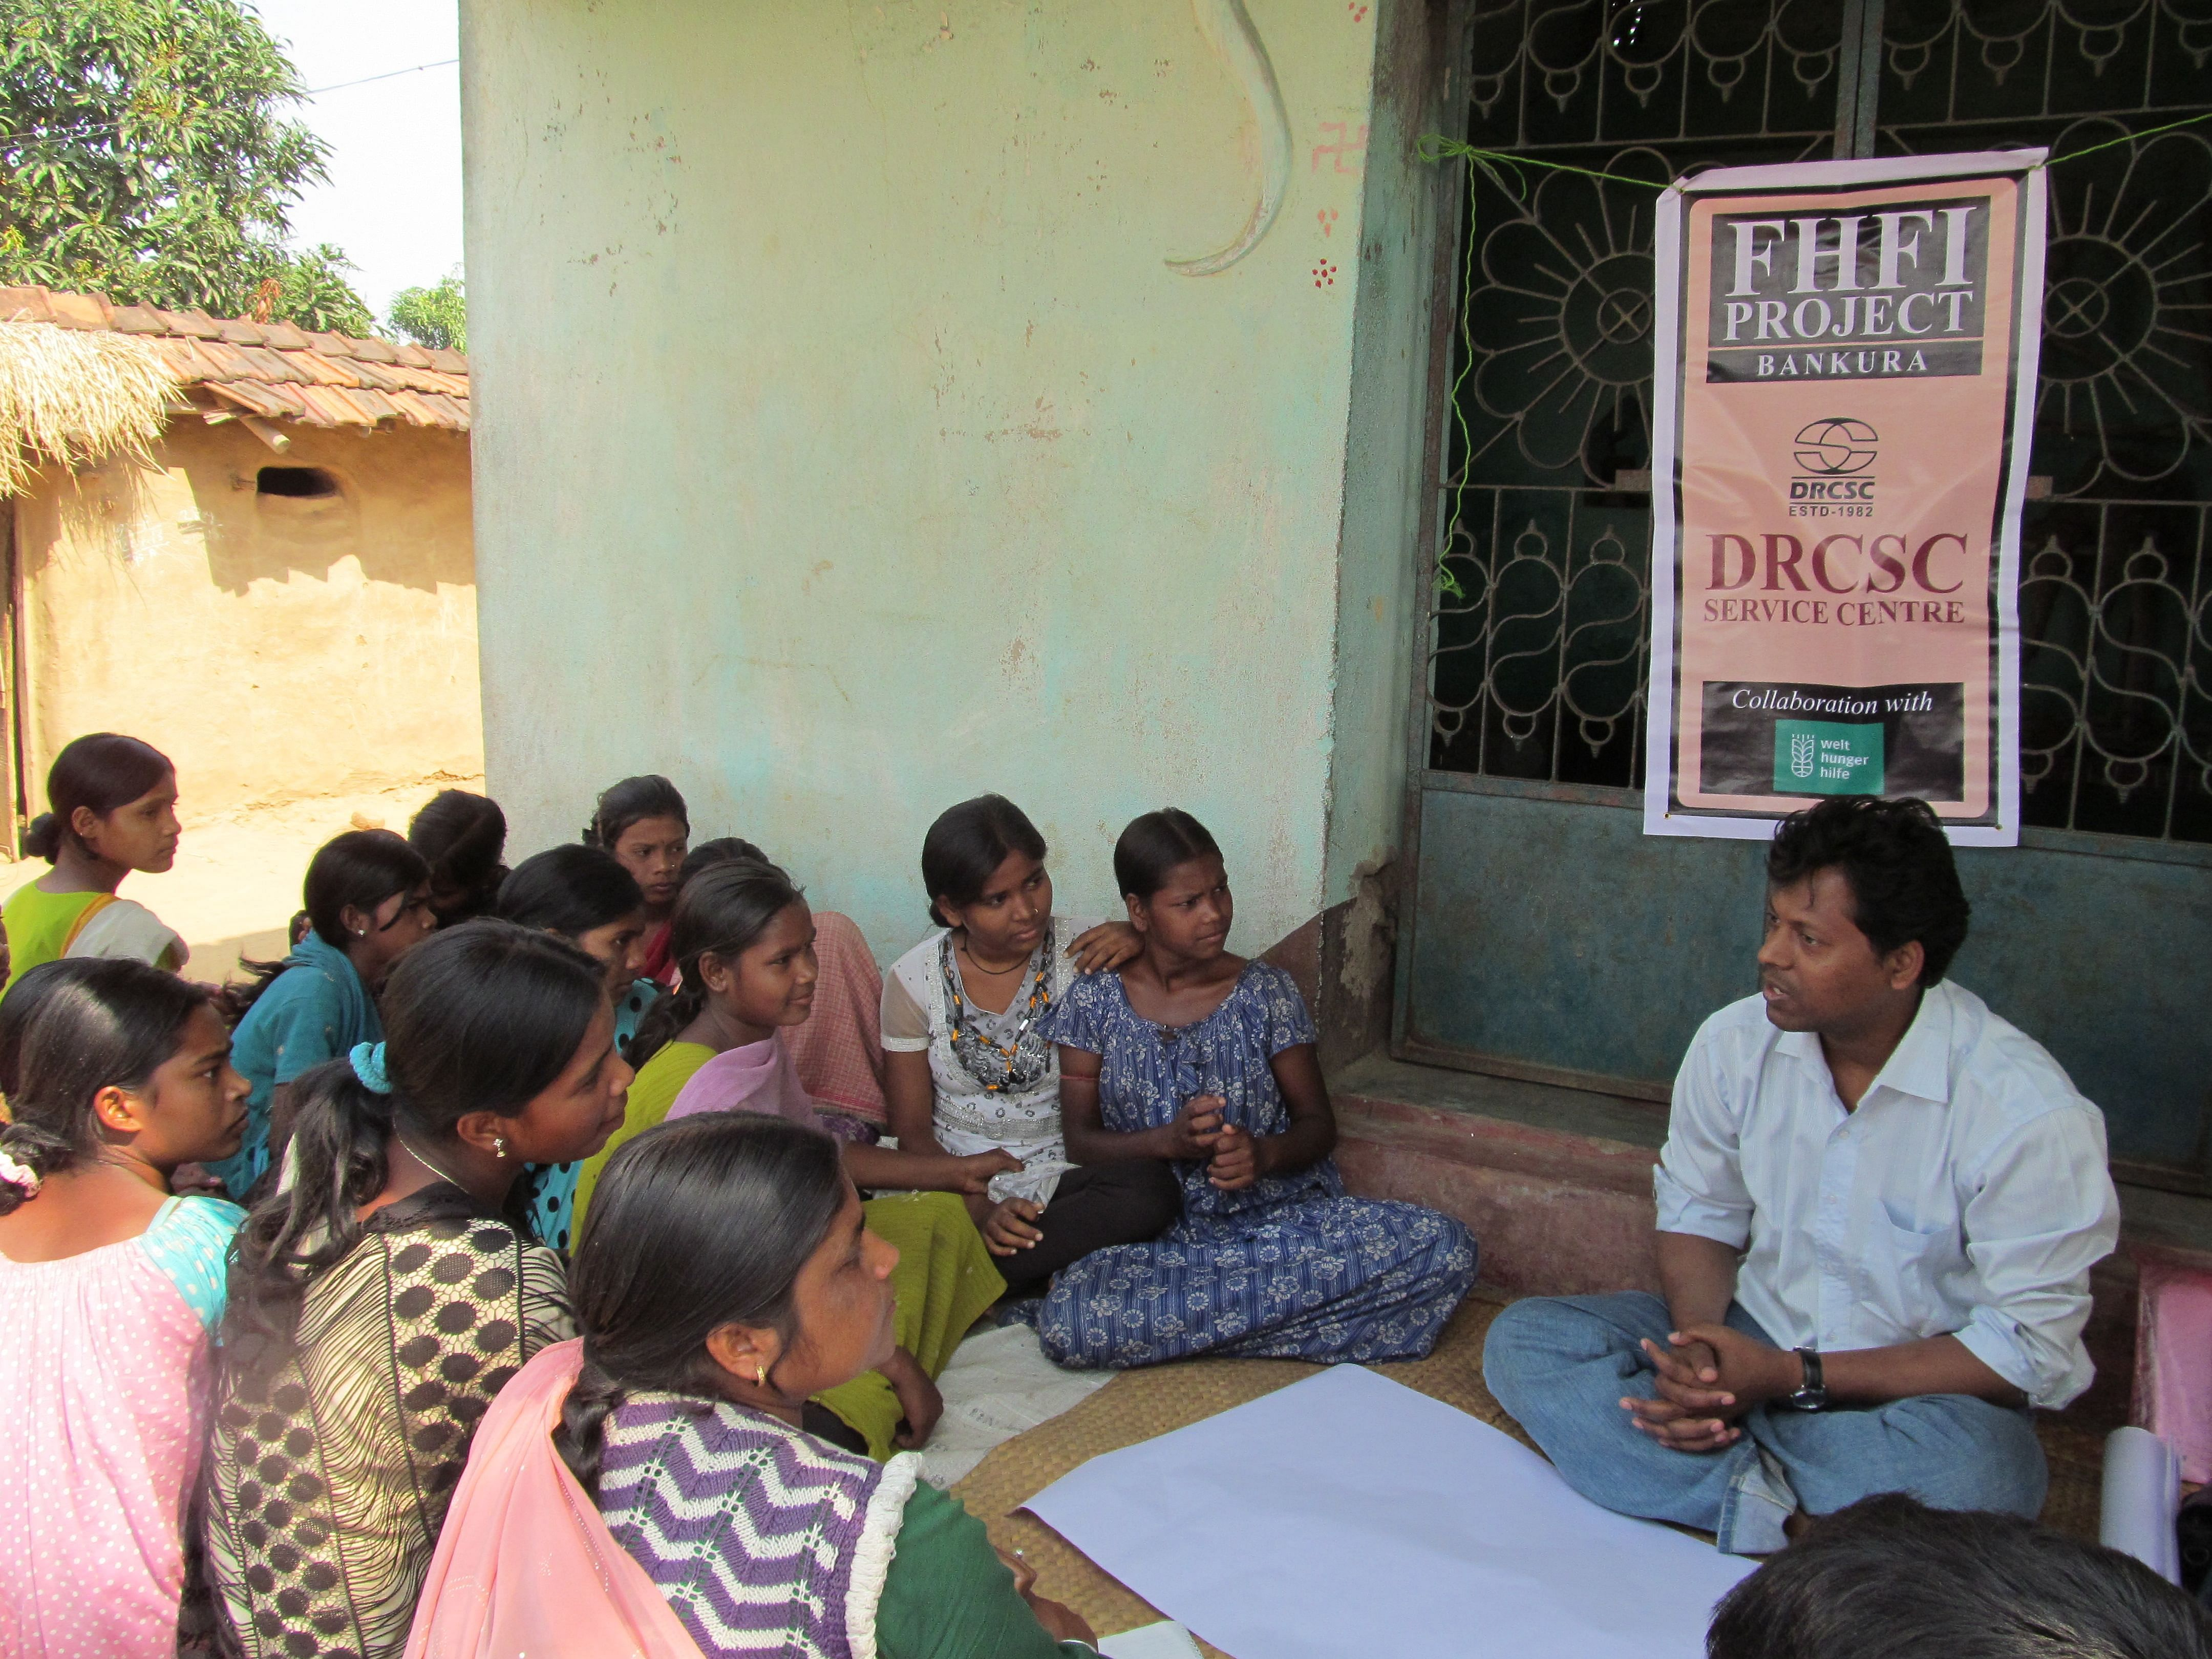 Youngsters in 32 villages of Ghoshergram and Jhunjkagram panchayats in Bankura district of West Bengal have formed groups that spread awareness on issues related to health, education and development. (Credit: DRCSC\WFS)